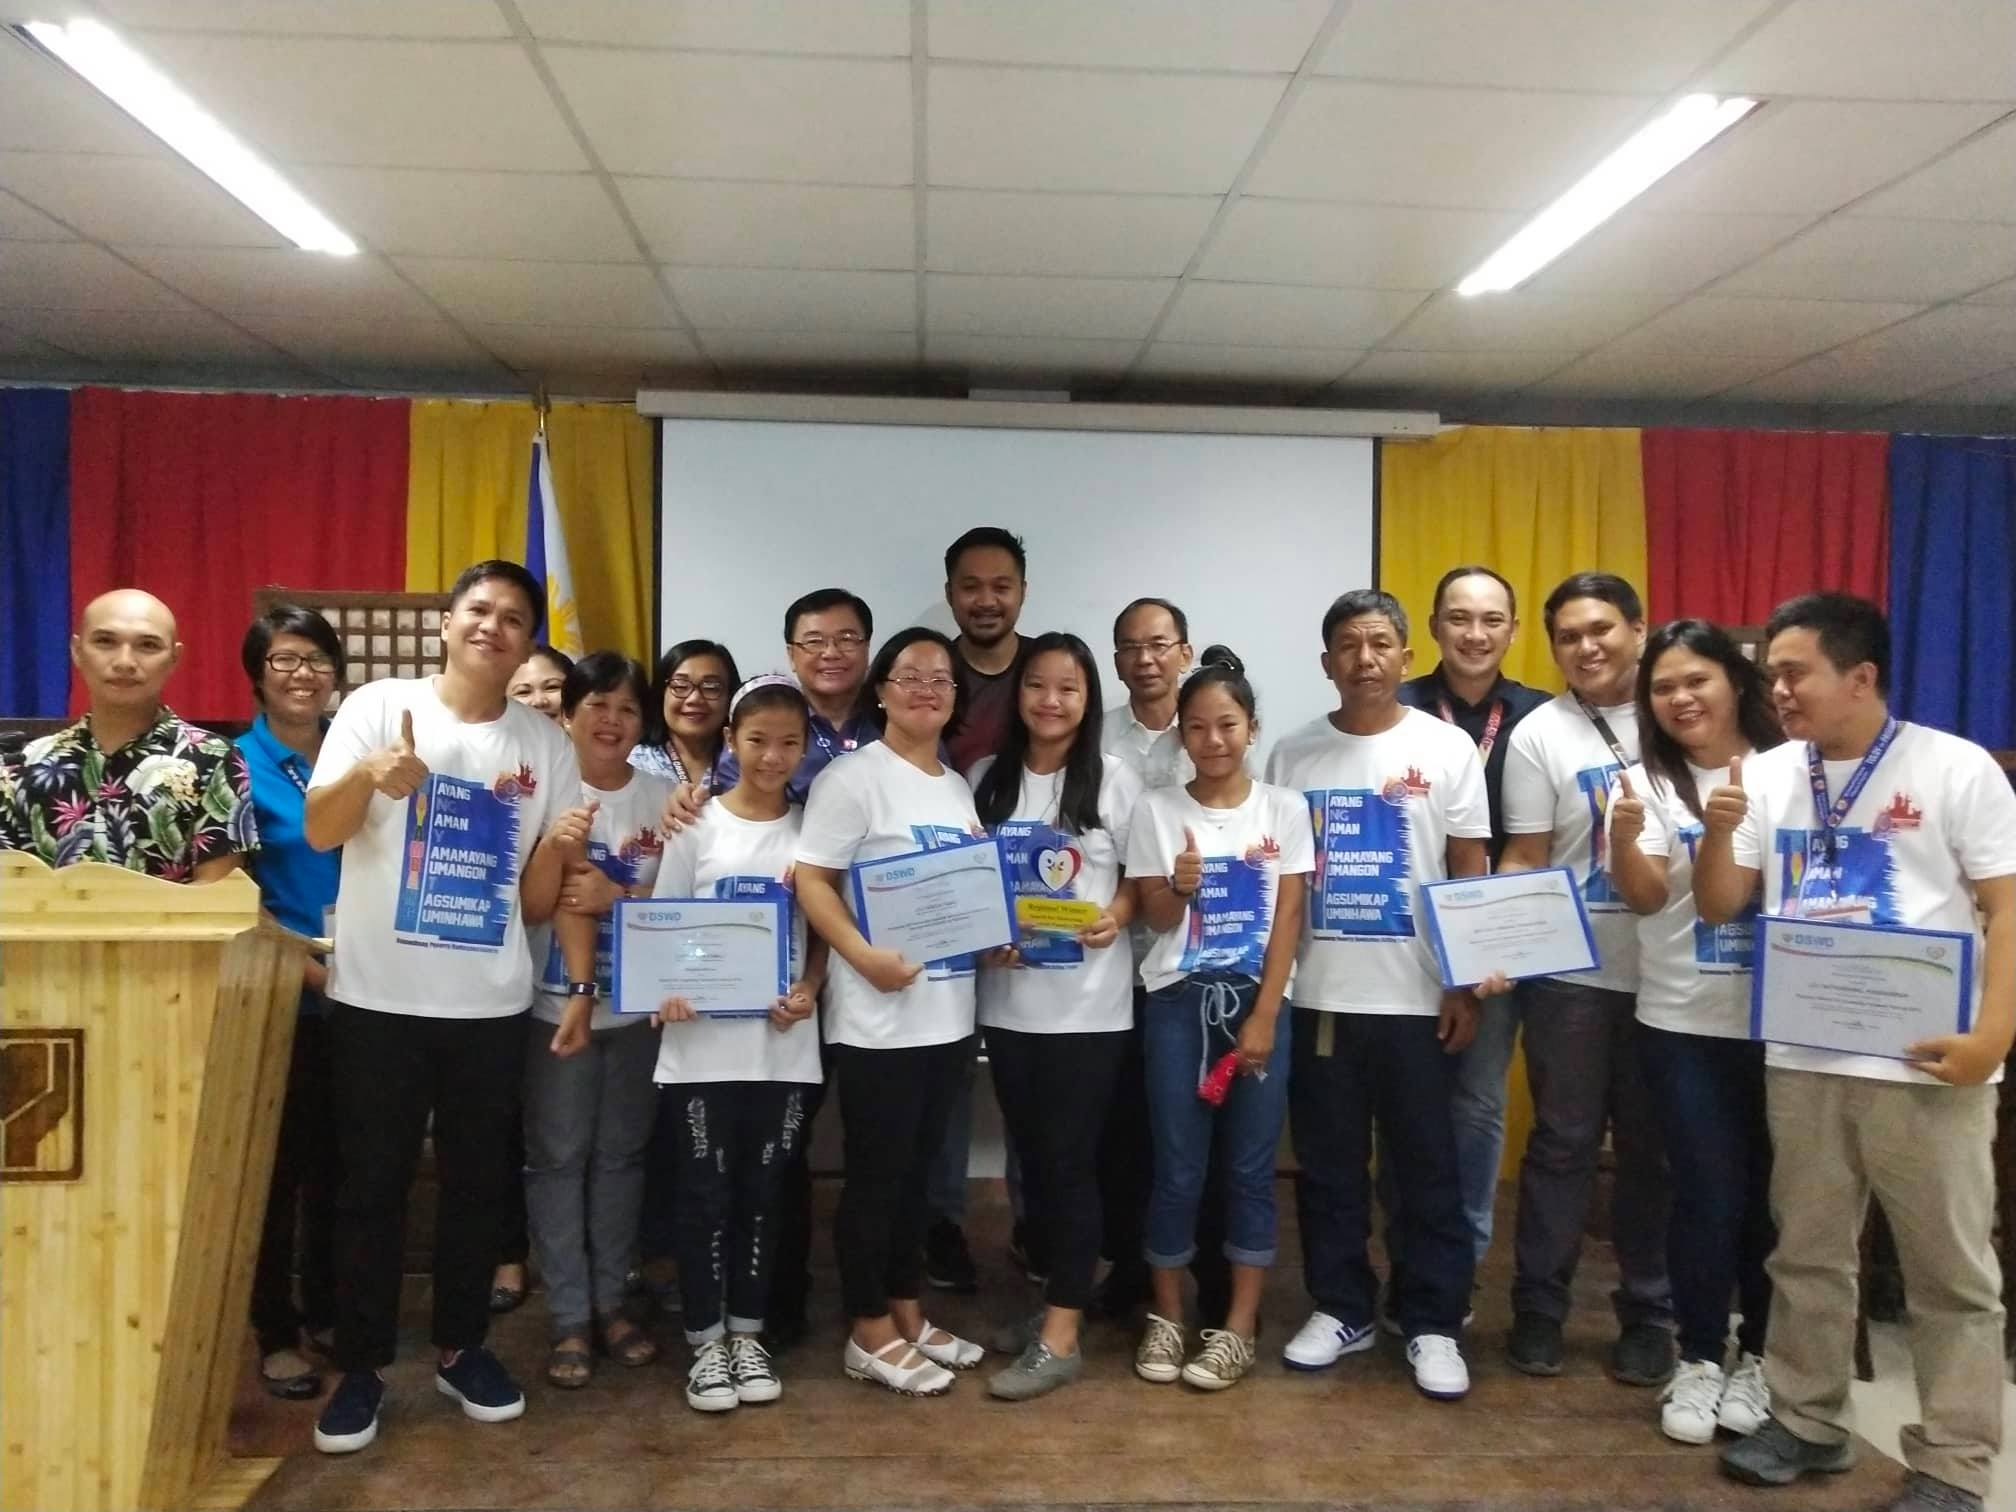 DSWD Huwarang Pamilya entry wins at the Regional Level